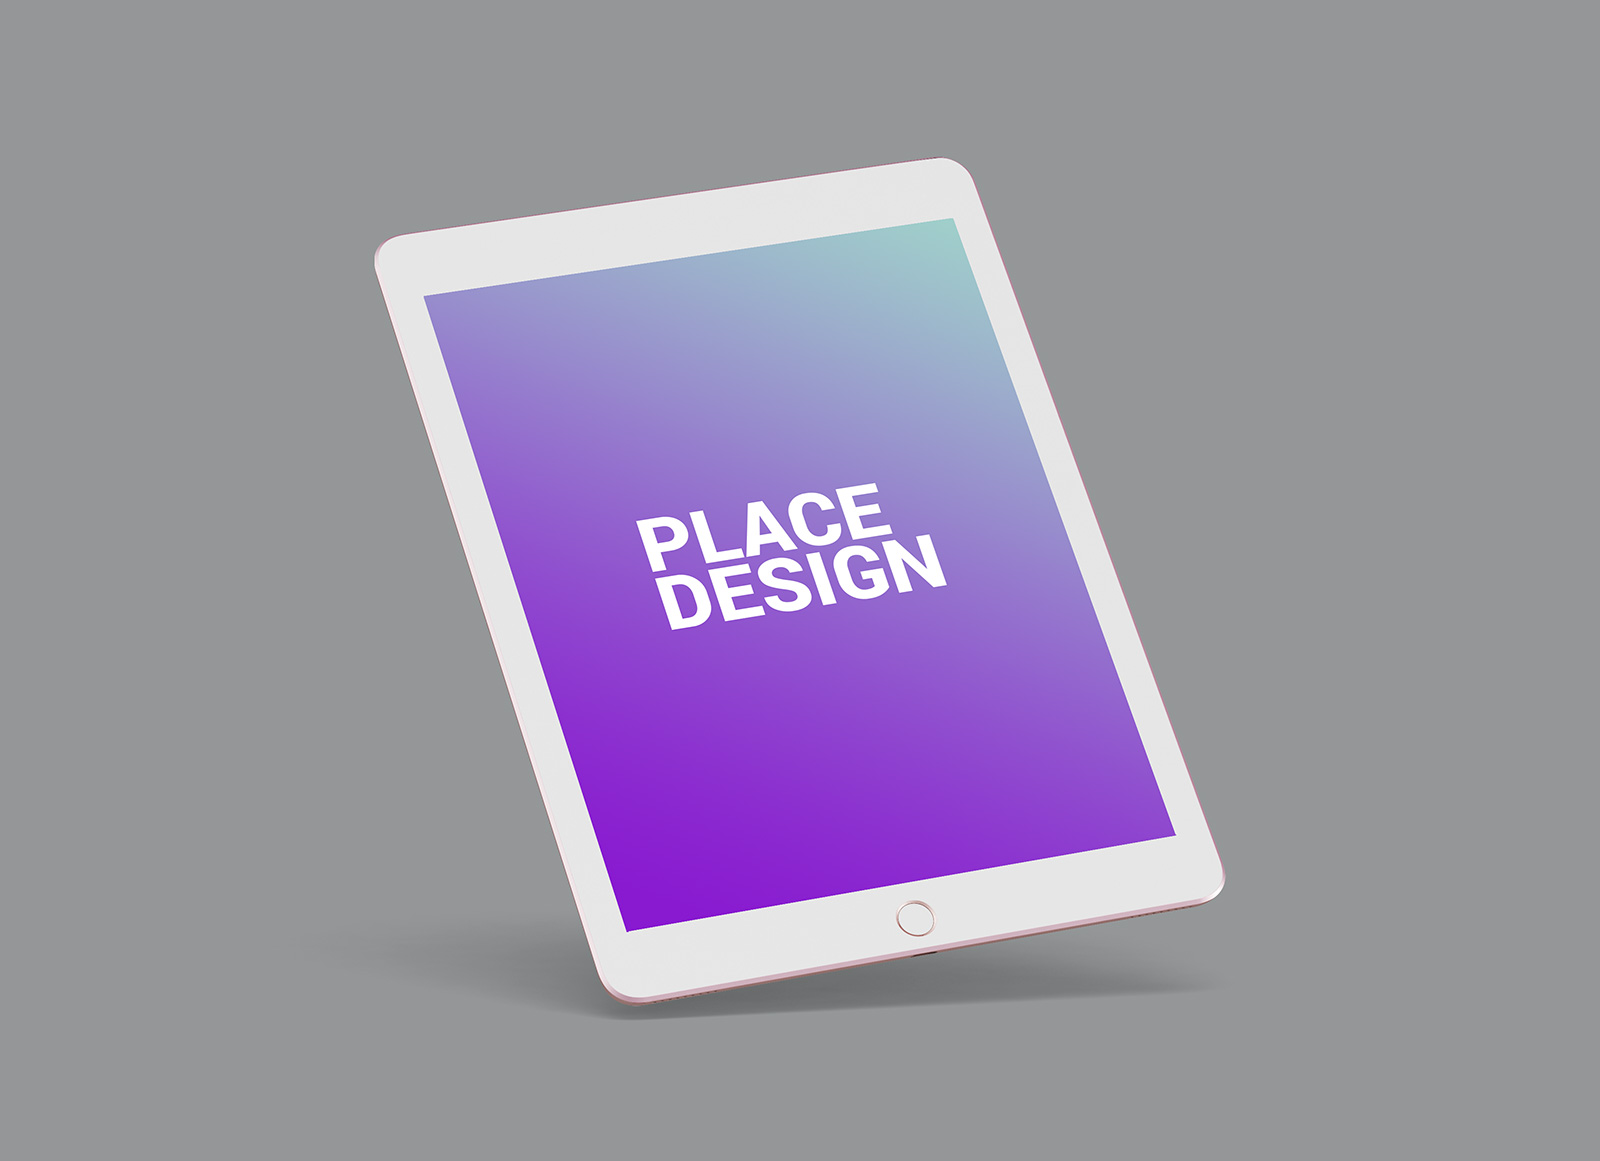 Free-Floating-Apple-iPad-Pro-Mockup-PSD-3